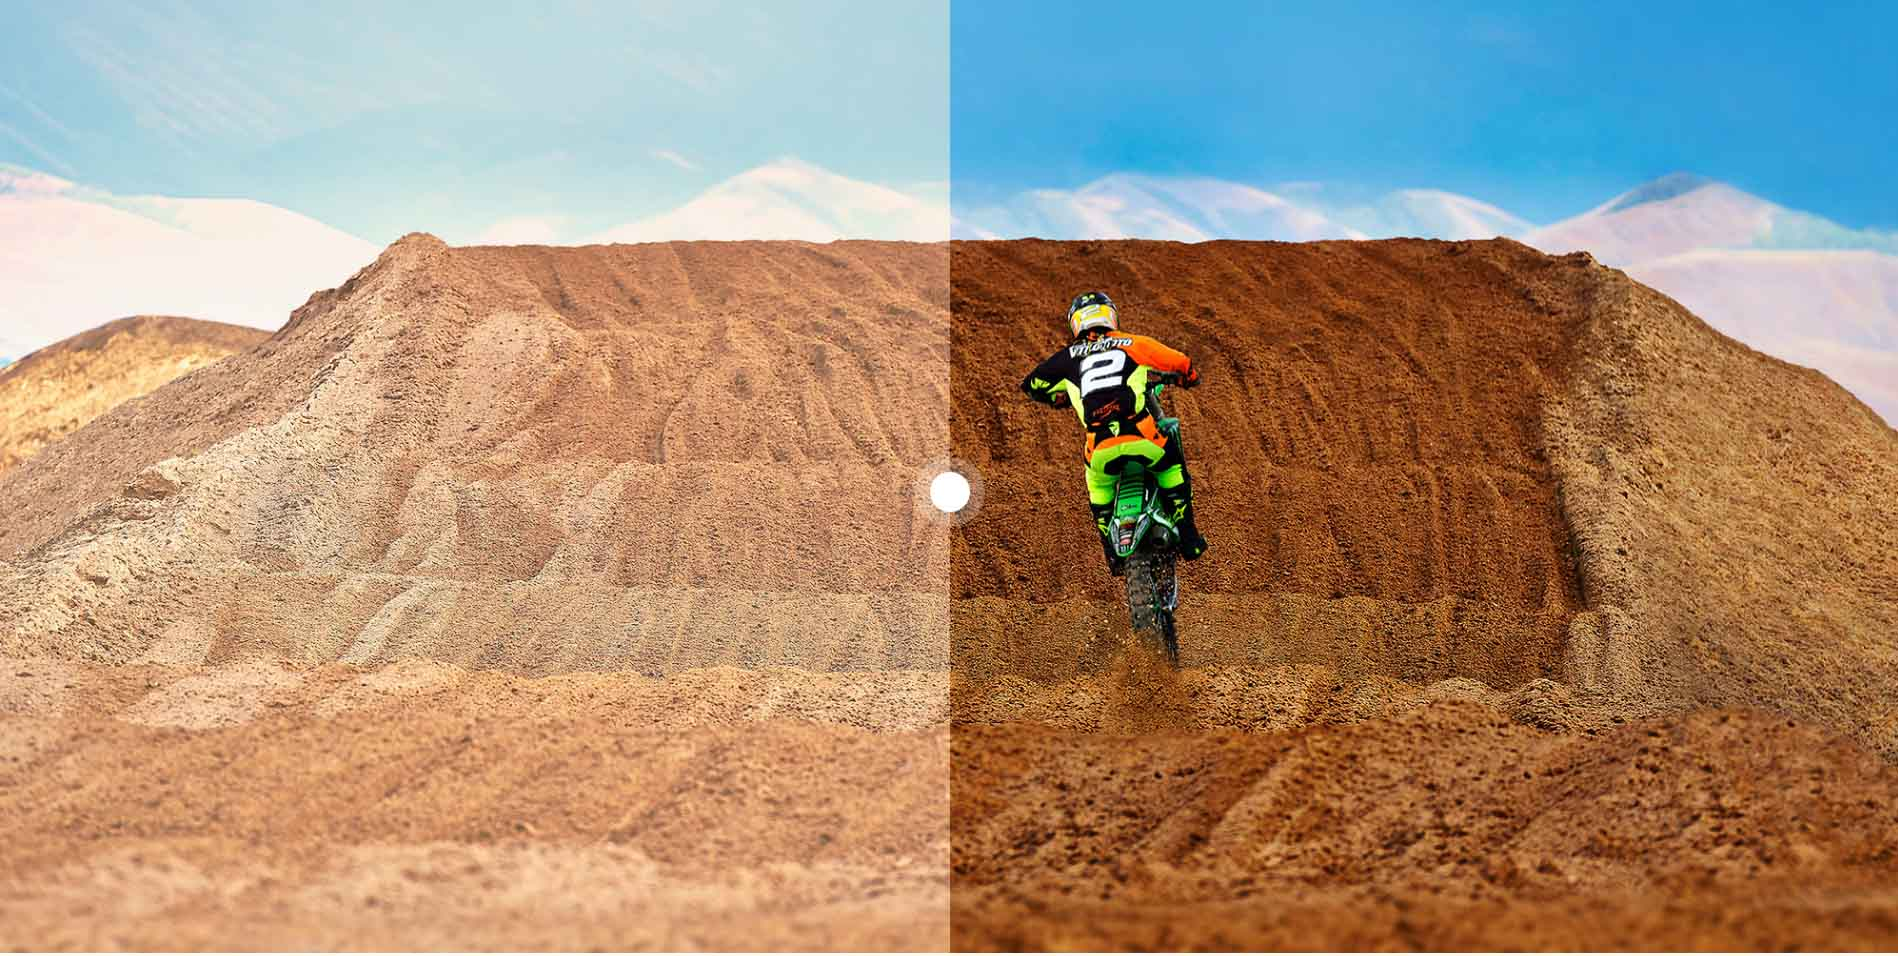 Oakley PRIZM™ MX lenses help you see subtle transitions in dirt conditions so you can master all those split-second decisions.  Lenses designed for the brutal tracks for off road, supercross and motorcross racing.  Oakley proprietary goggles in world class Oakley MX Goggles.